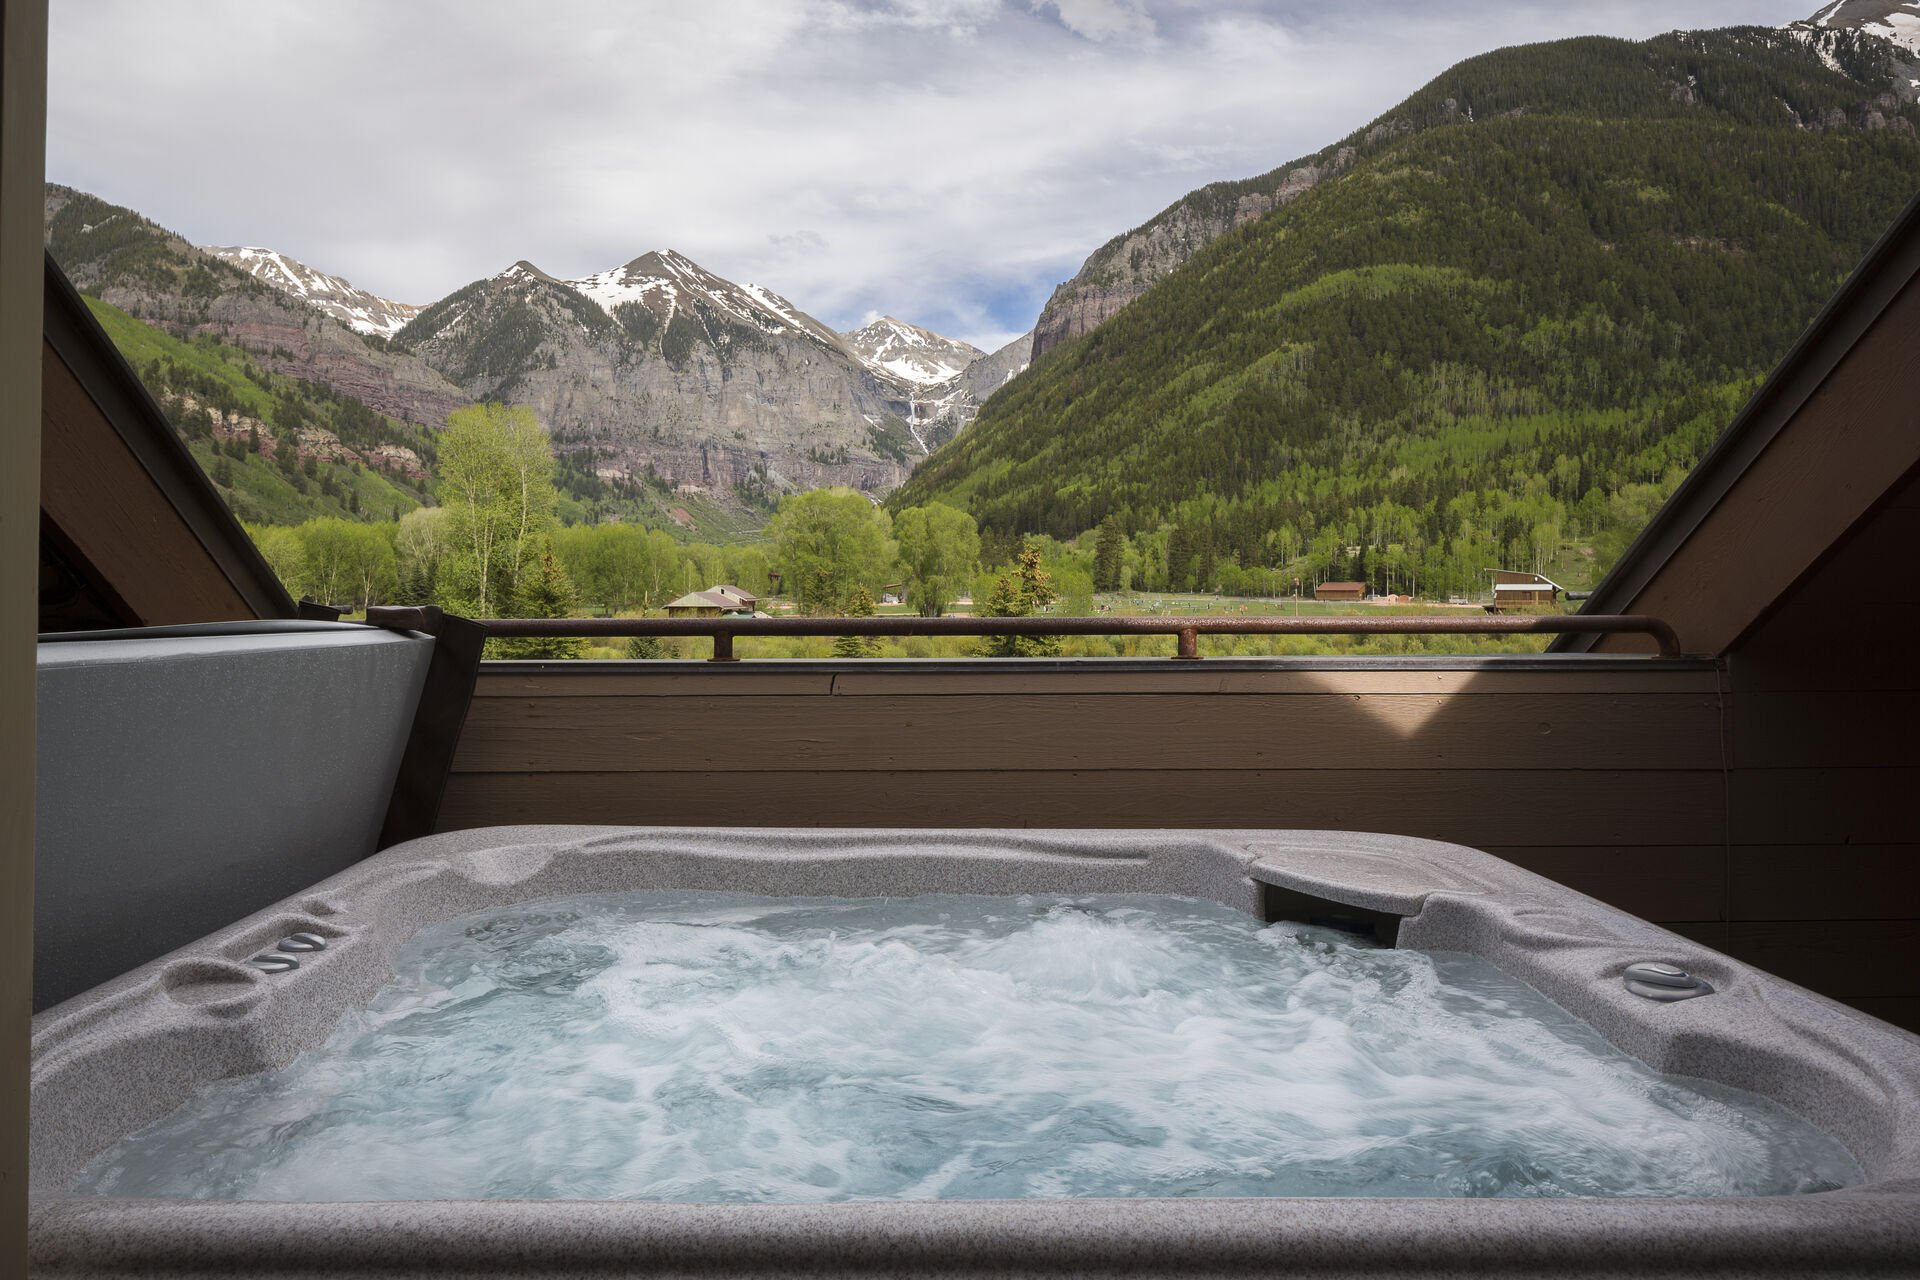 The private hot tub of this Colorado Mountain vacation rental, with views out onto the mountains.